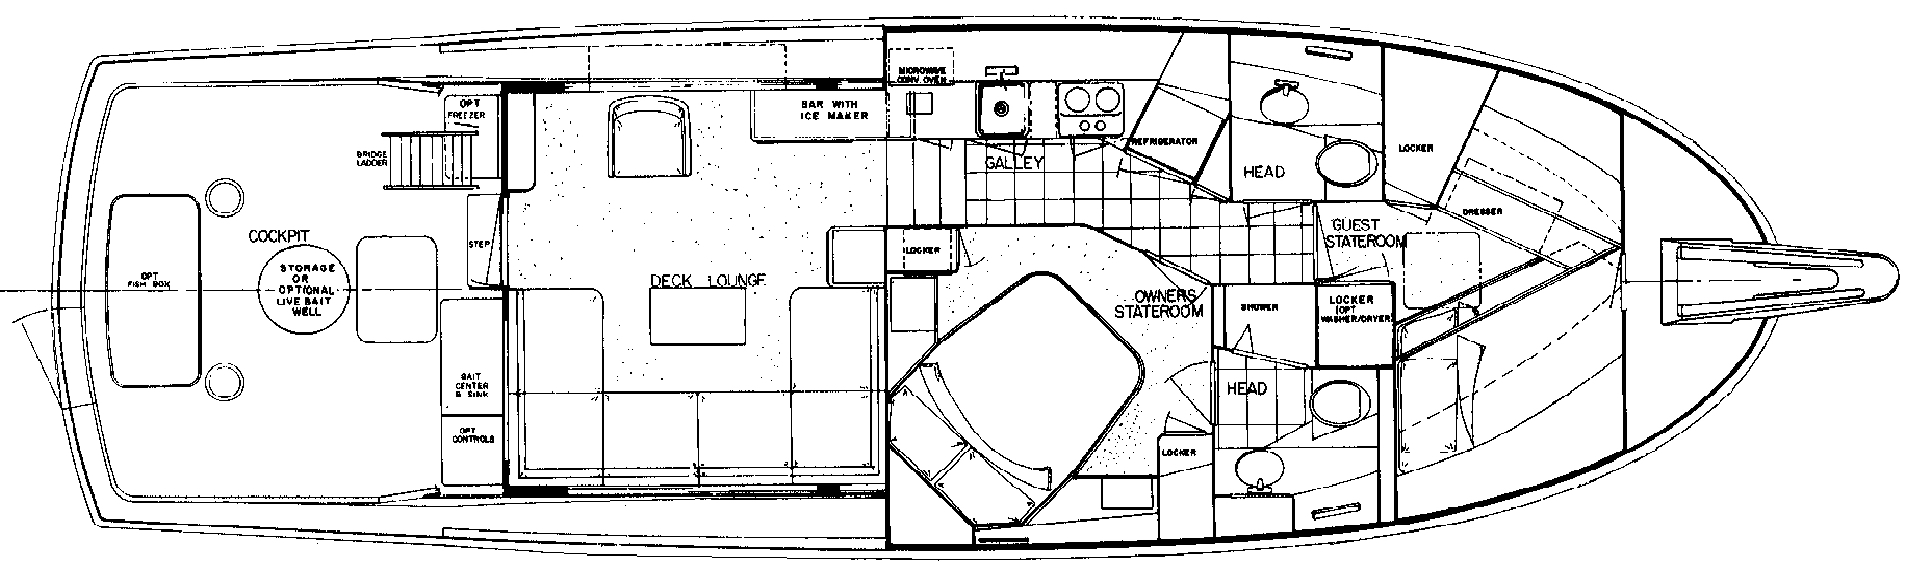 45 Convertible Floor Plan 1